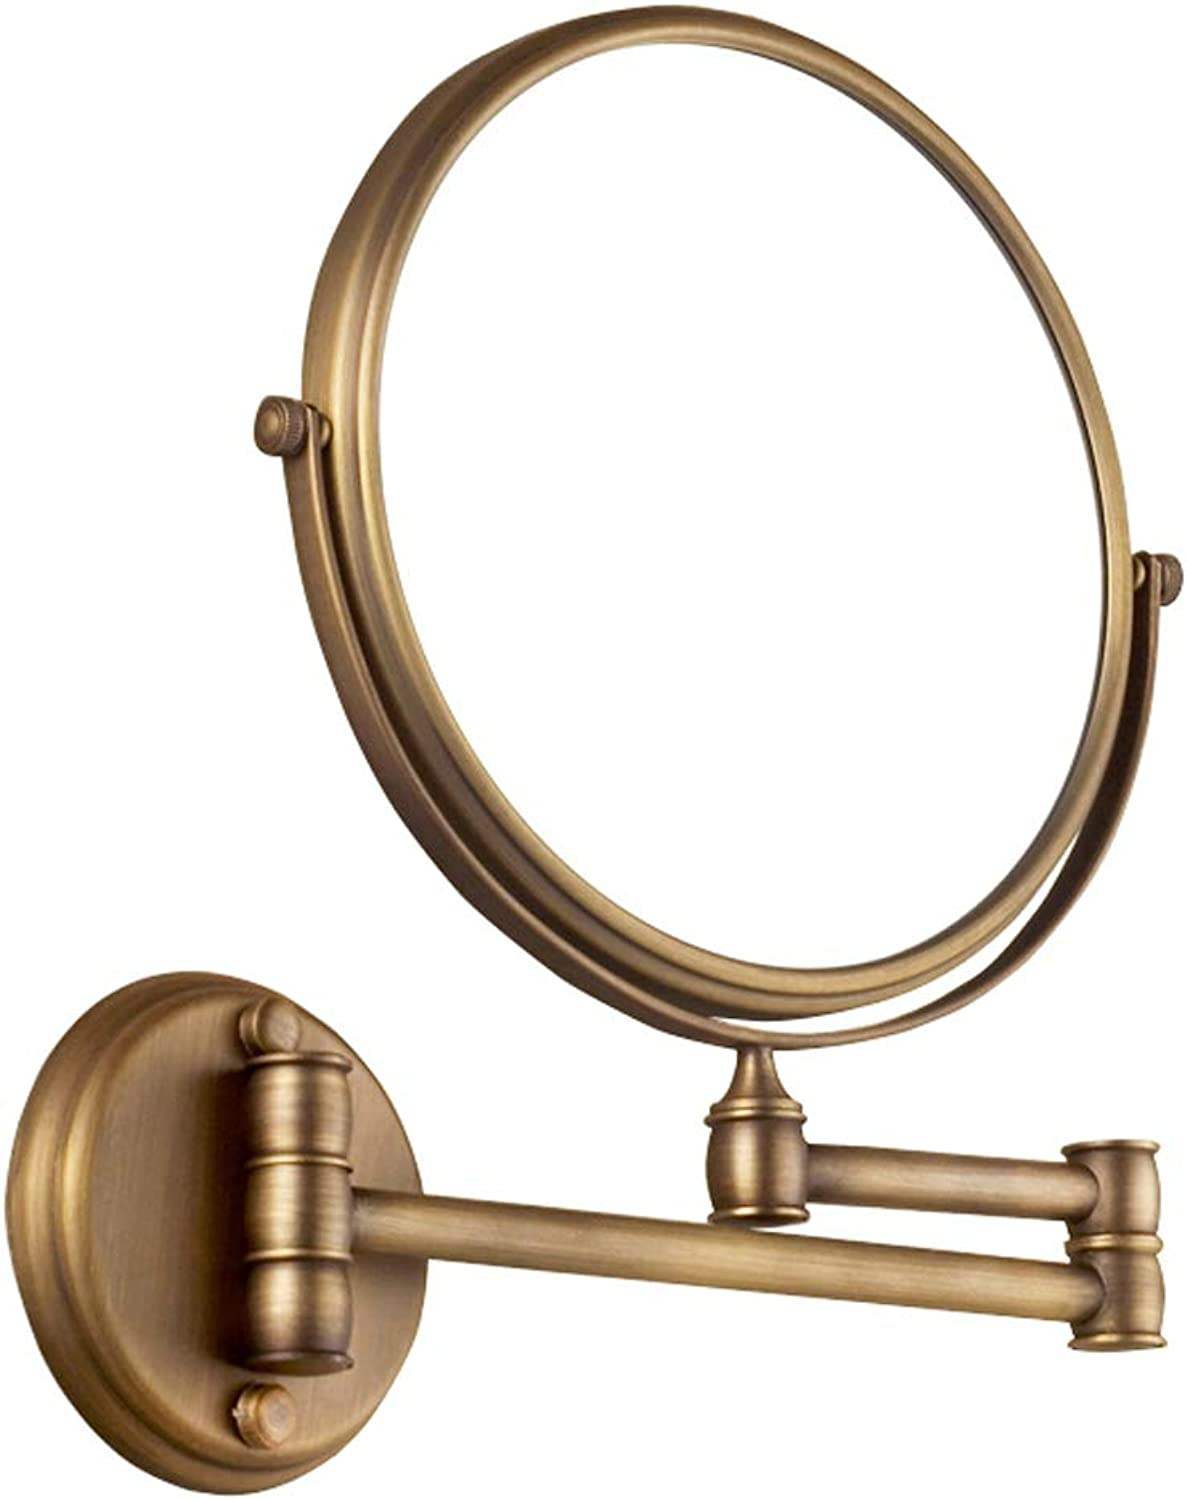 Wall-Mounted Mirror 3X Magnification 8 Inch Double-Sided Swivel Vanity Makeup Mirror, Brushed Copper